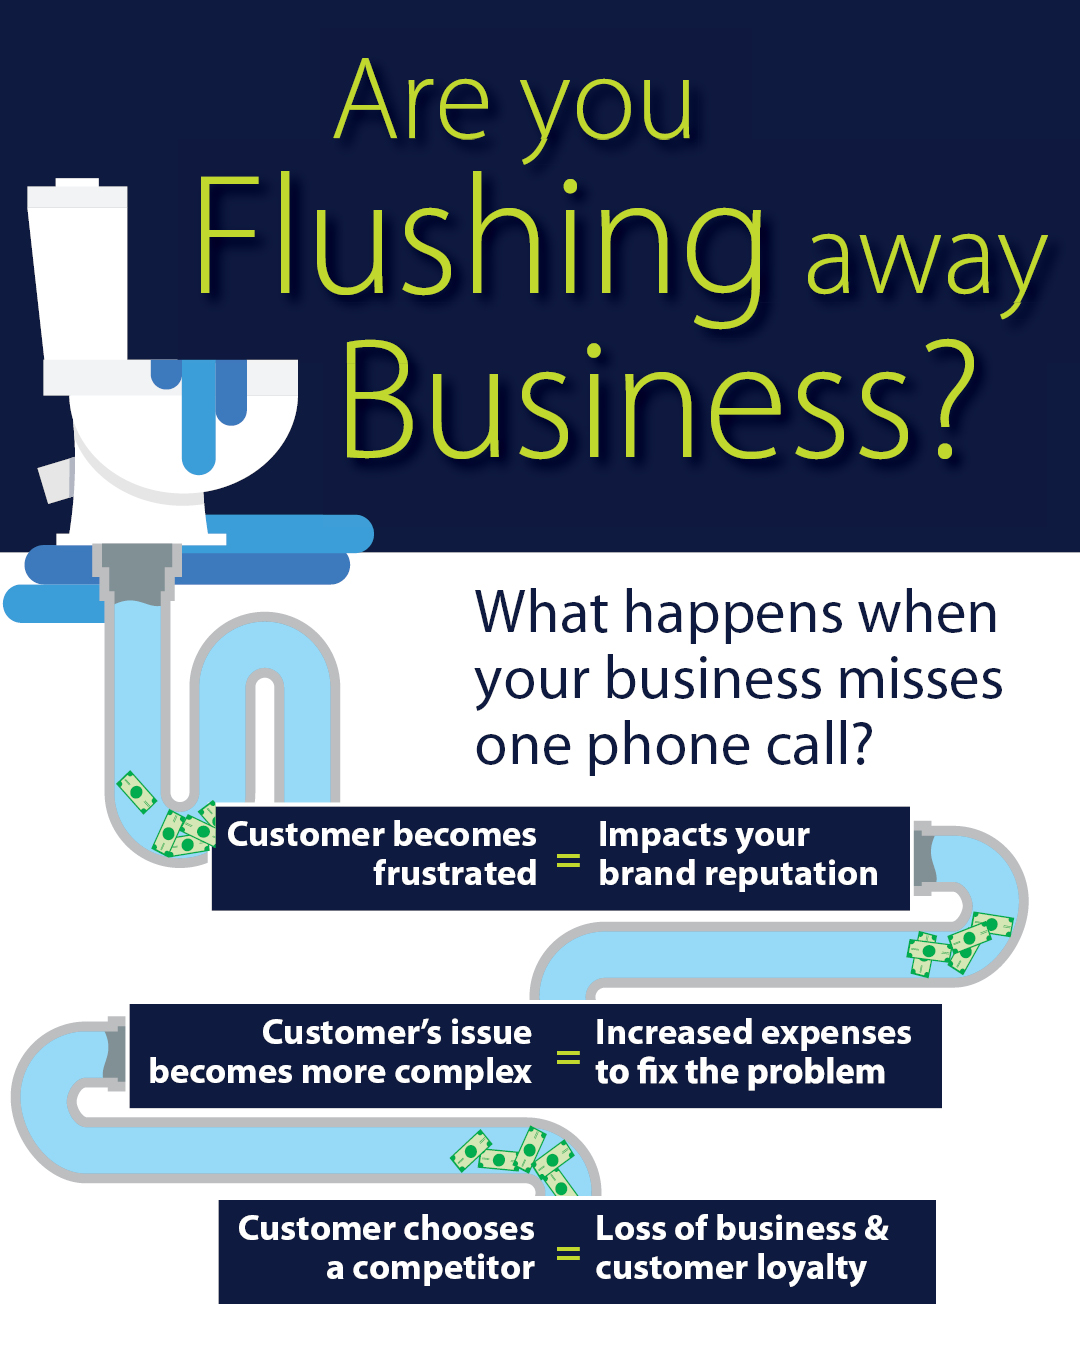 Are you flushing away business